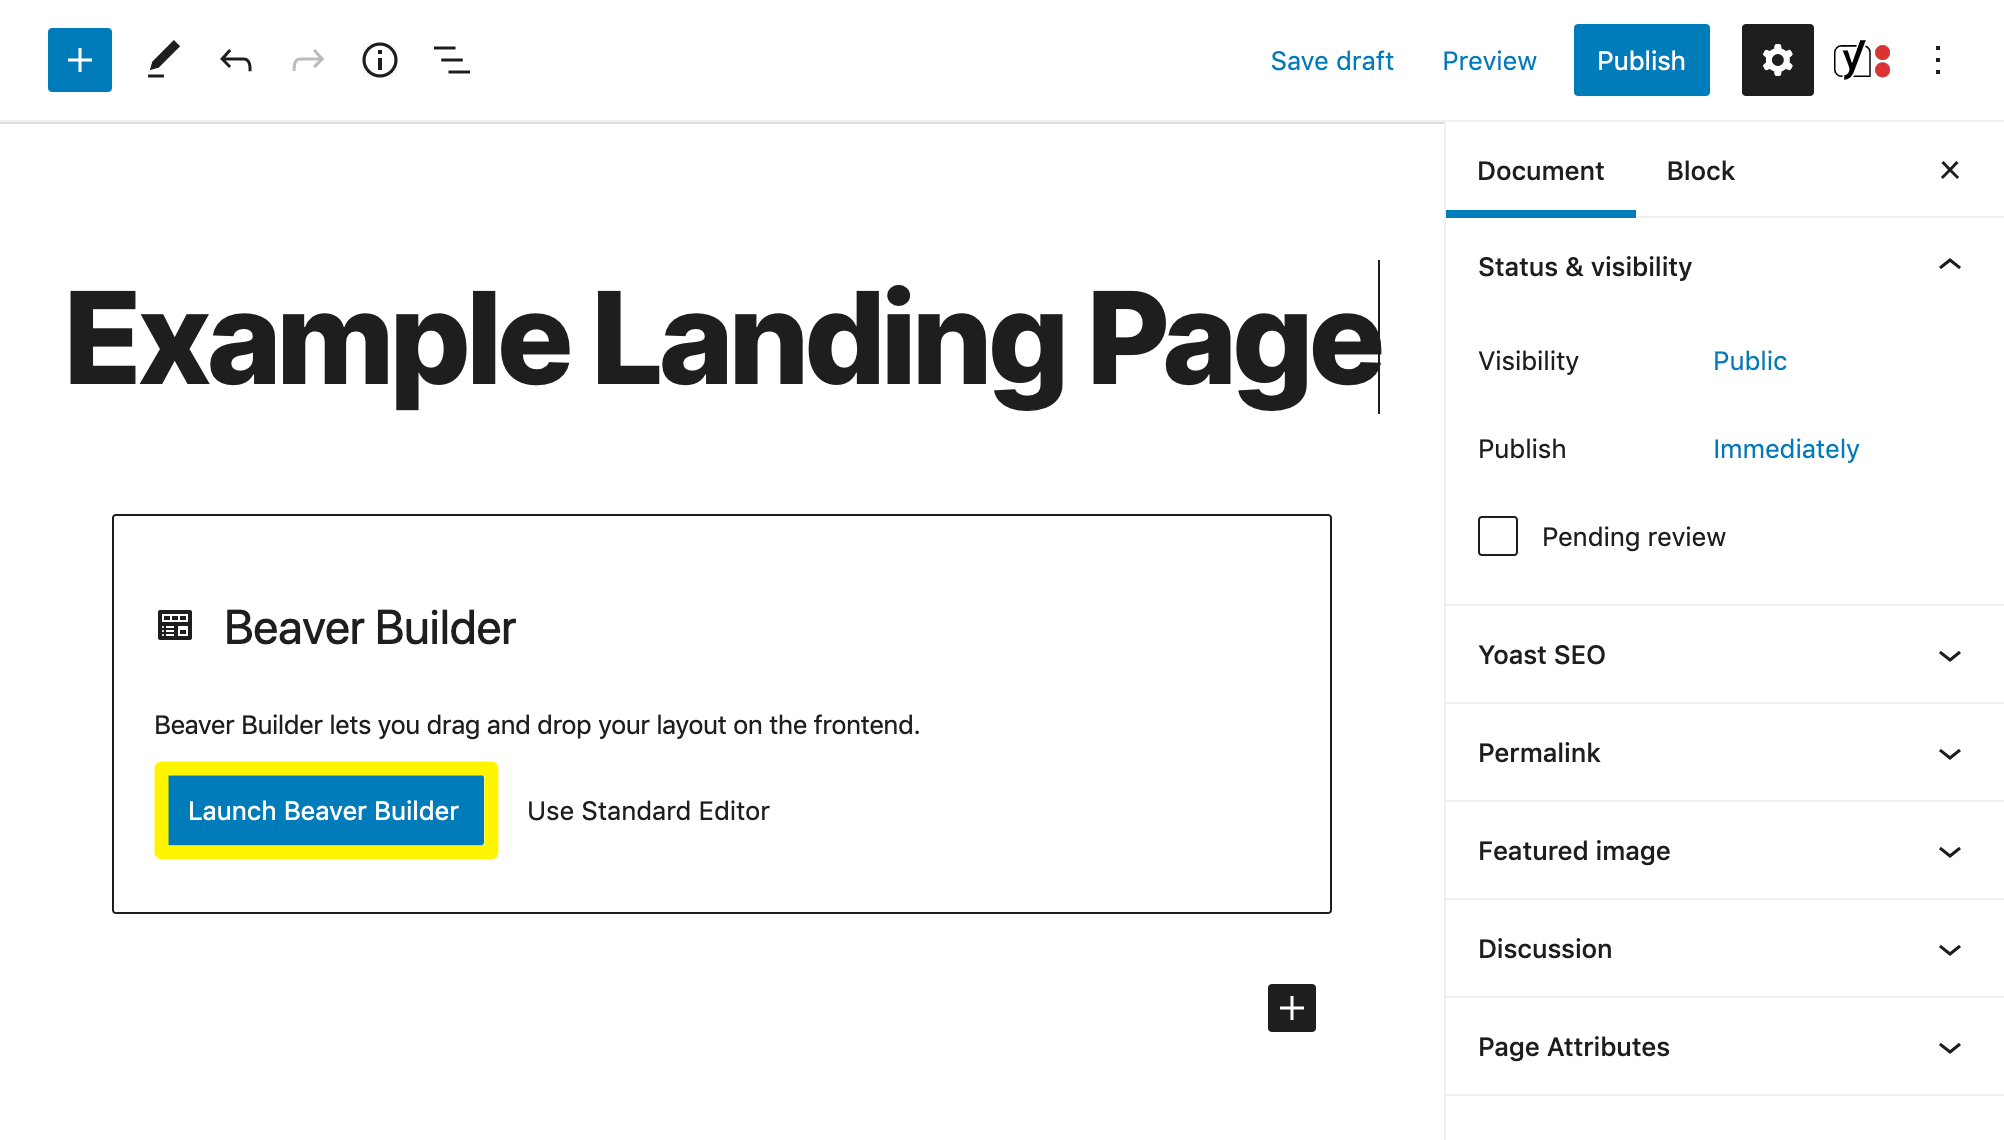 Launching Beaver Builder to create a new landing page.